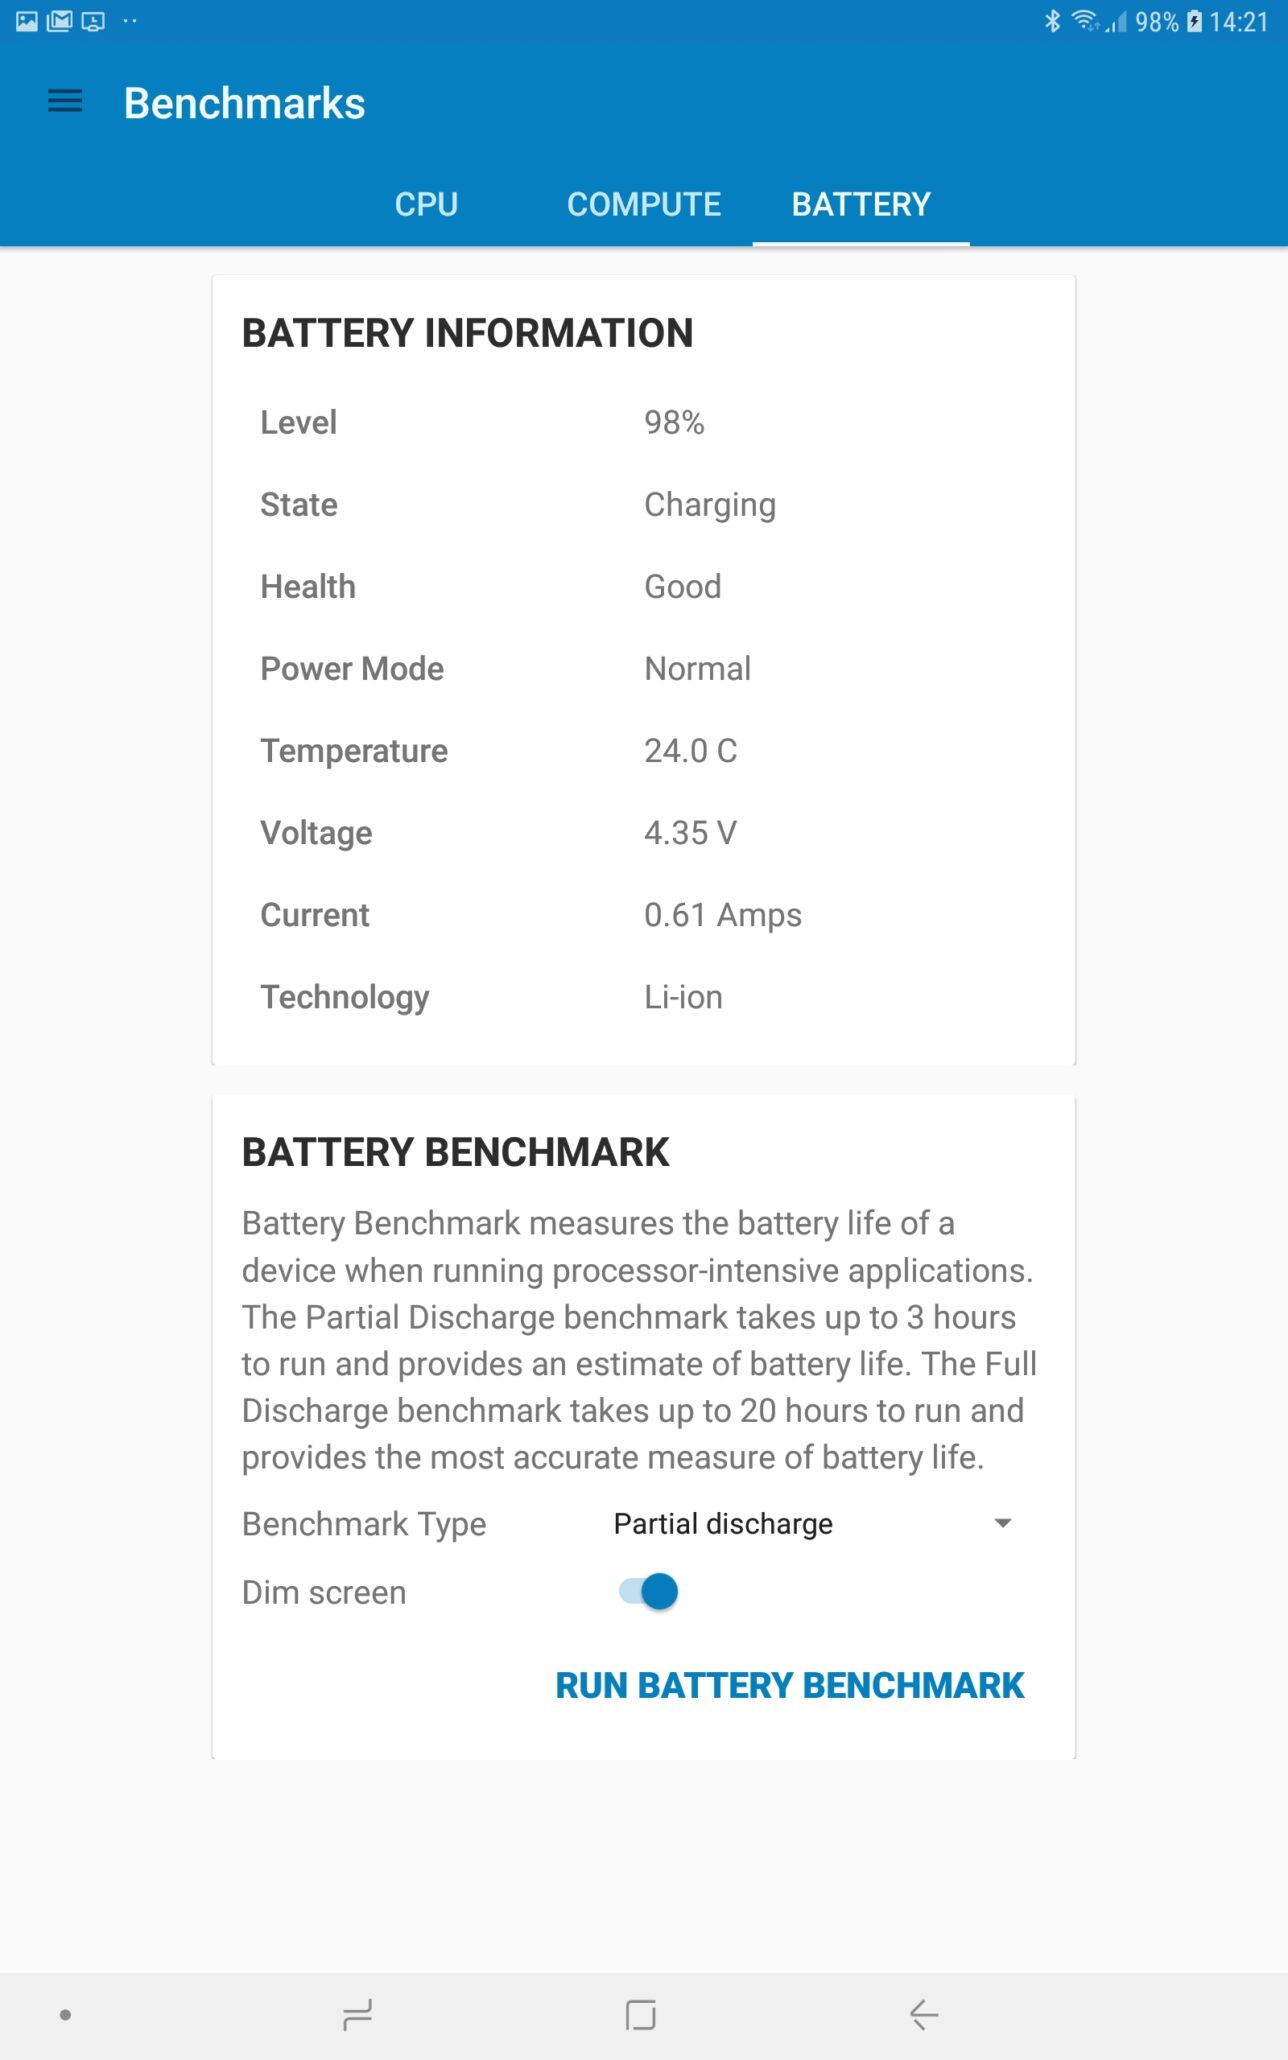 samsung-galaxy-tab-s4-review-07-benchmarking-geekbench-part-12